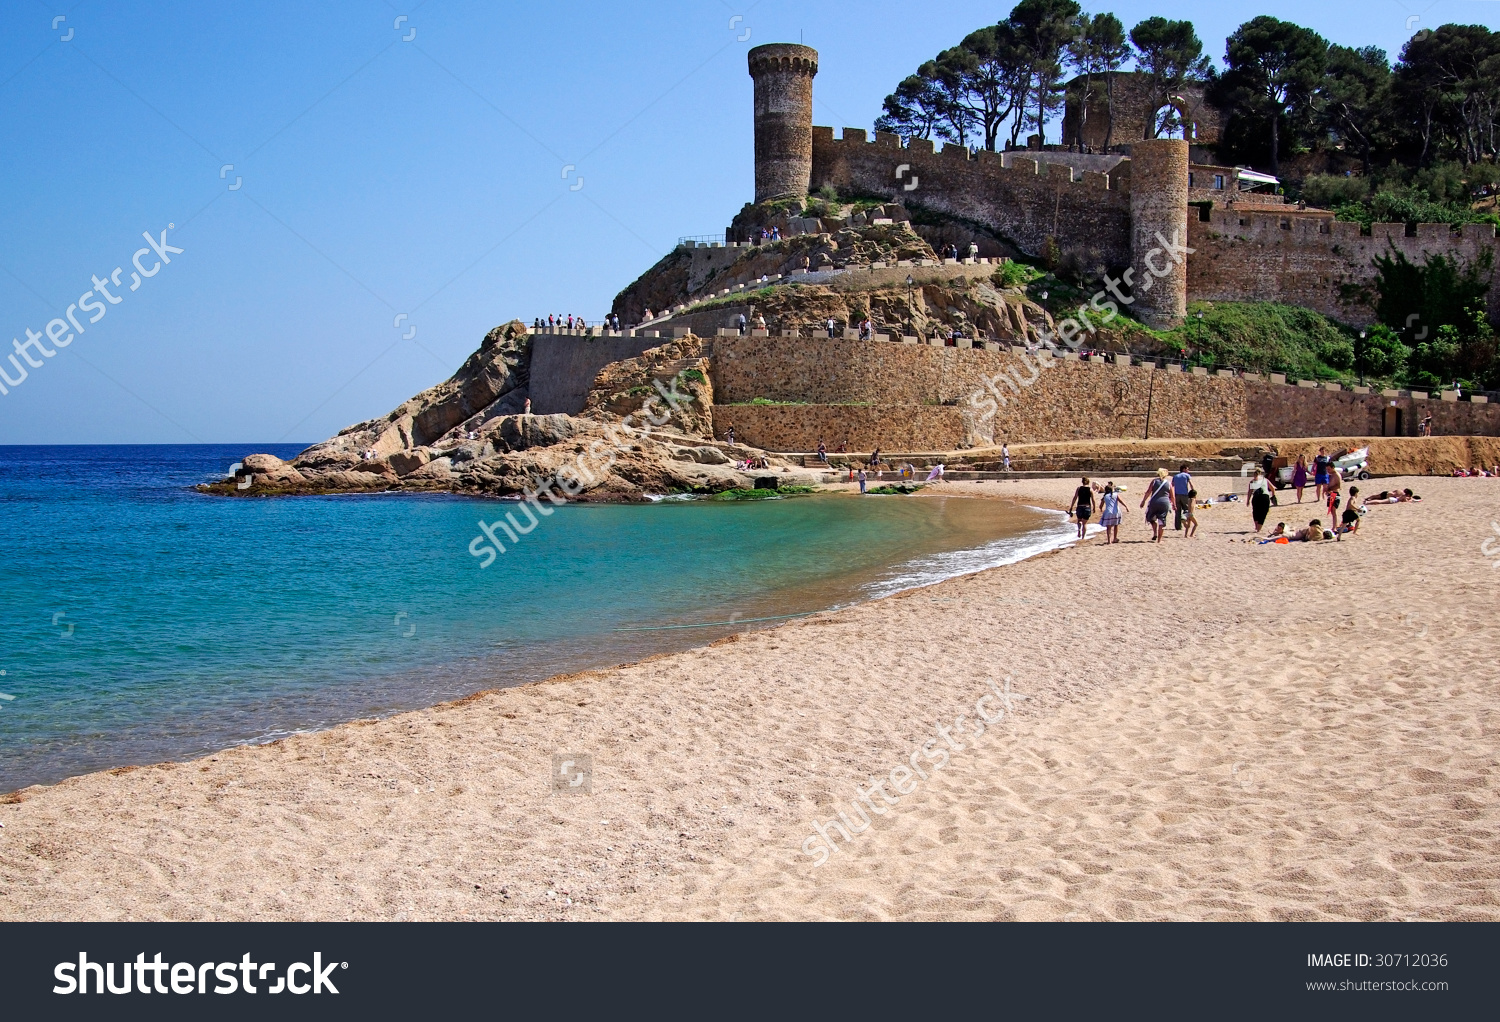 Tossa De Mar Castle Stone Wall Stock Photo 30712036.